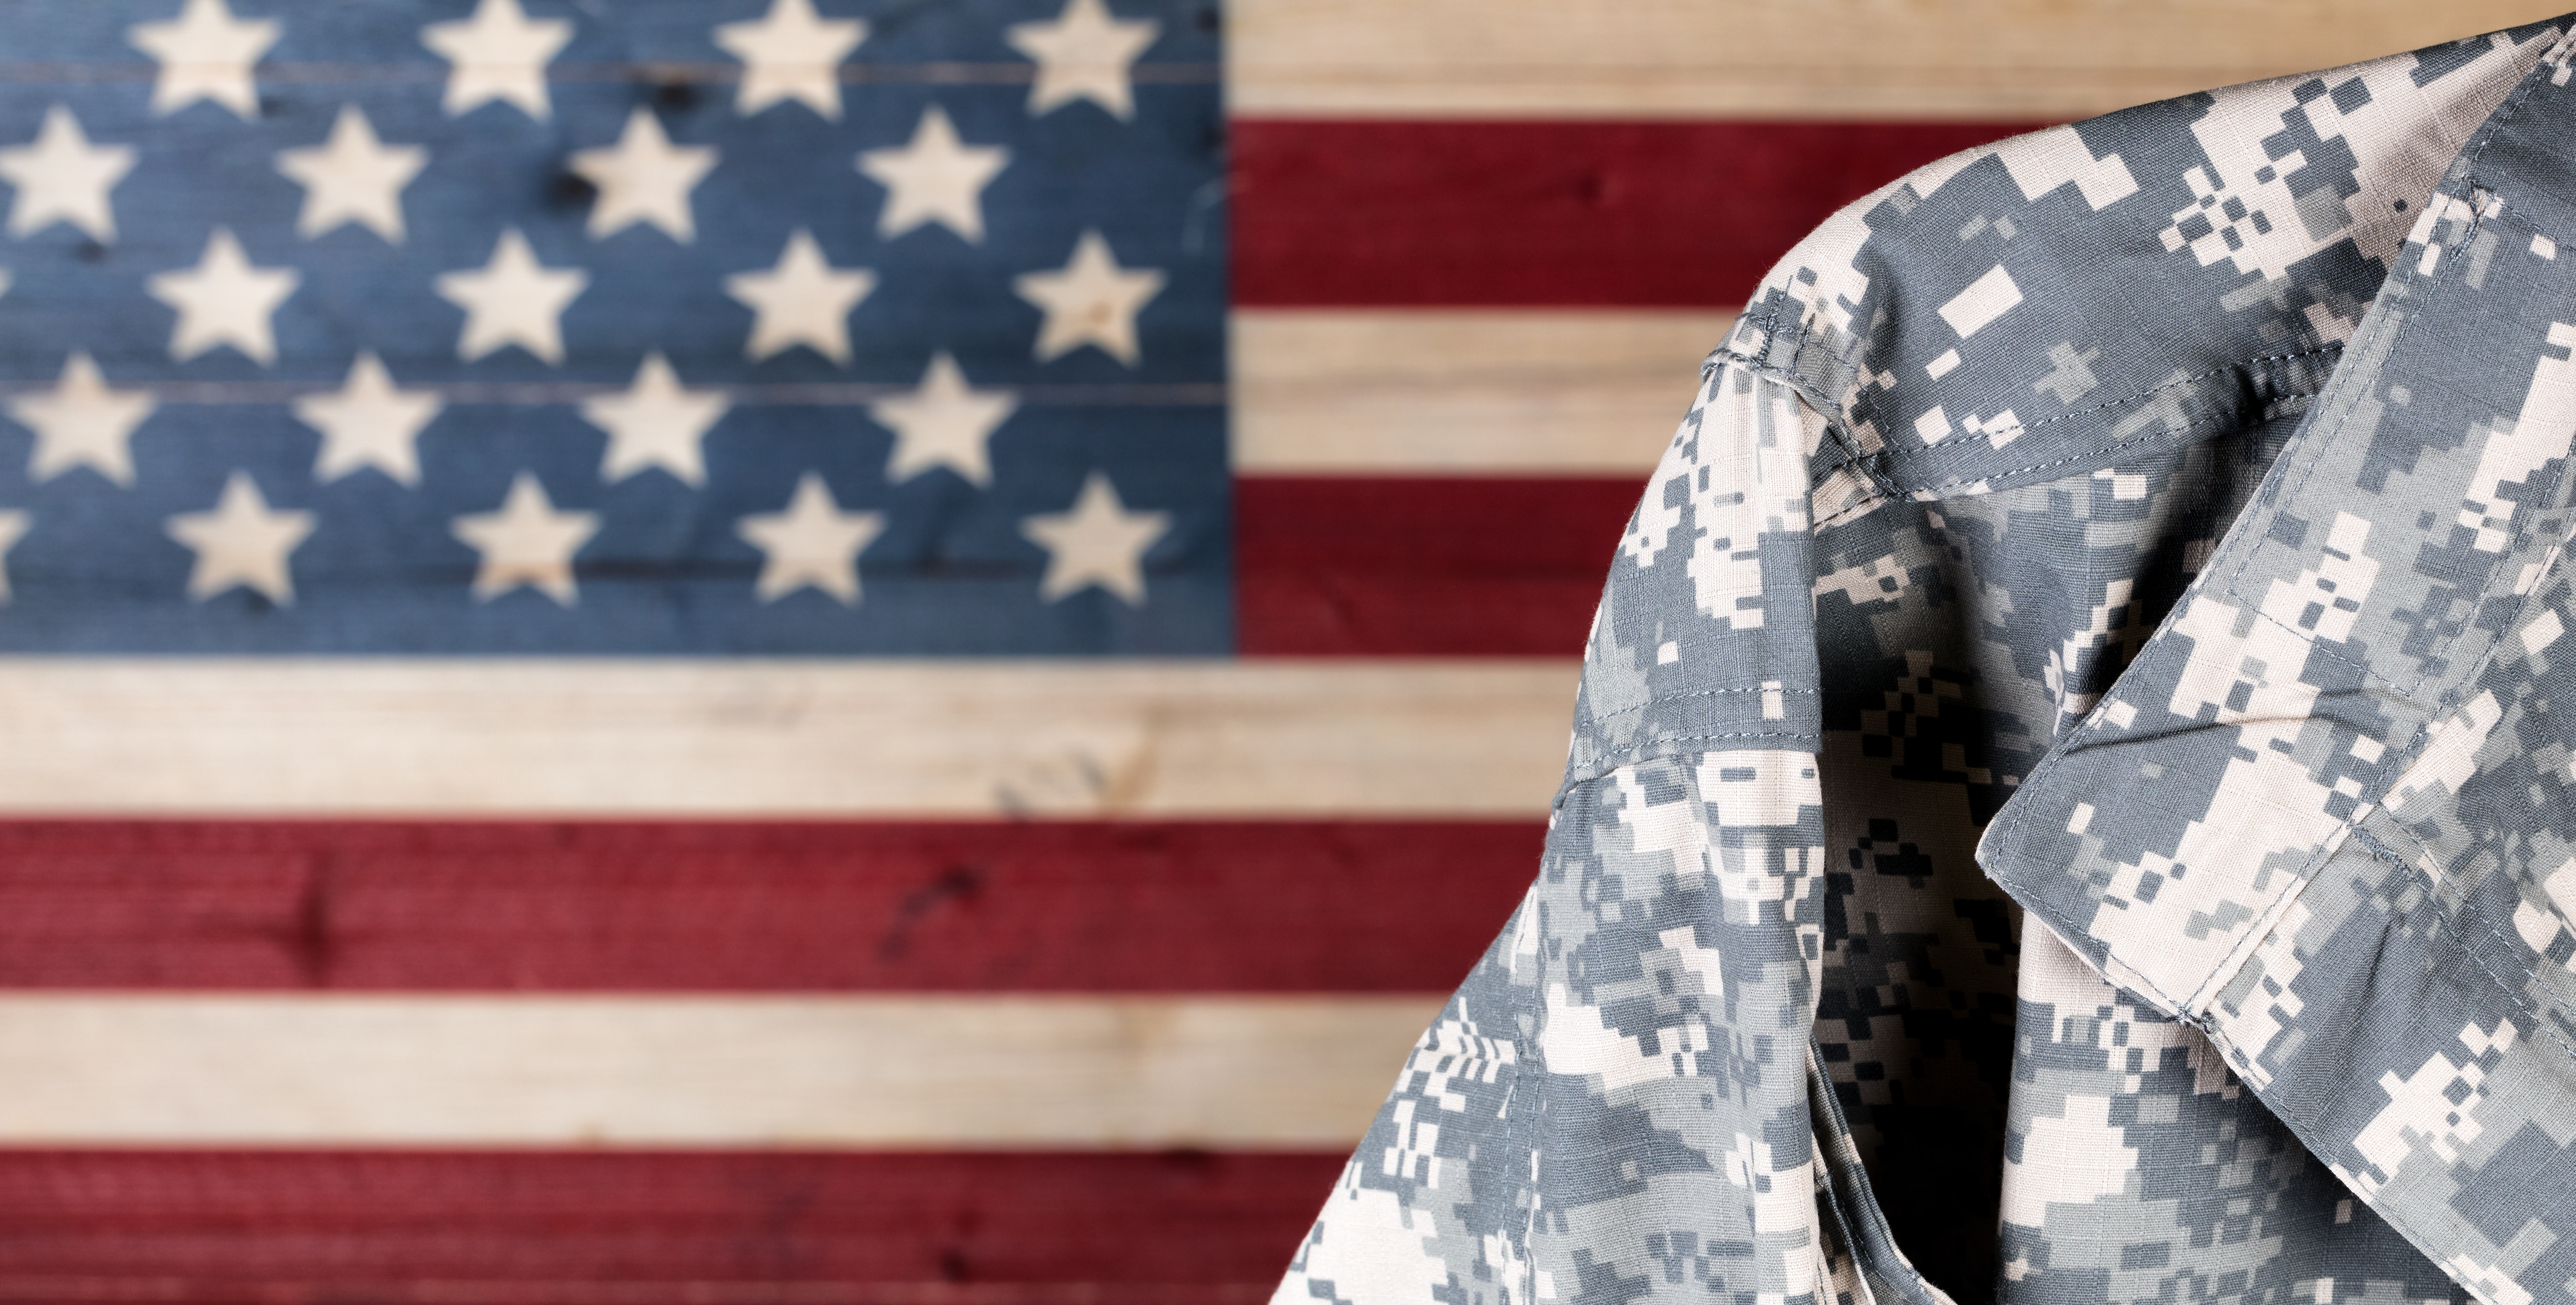 Armed Foraces Day: Legal Issues for Military Personnel